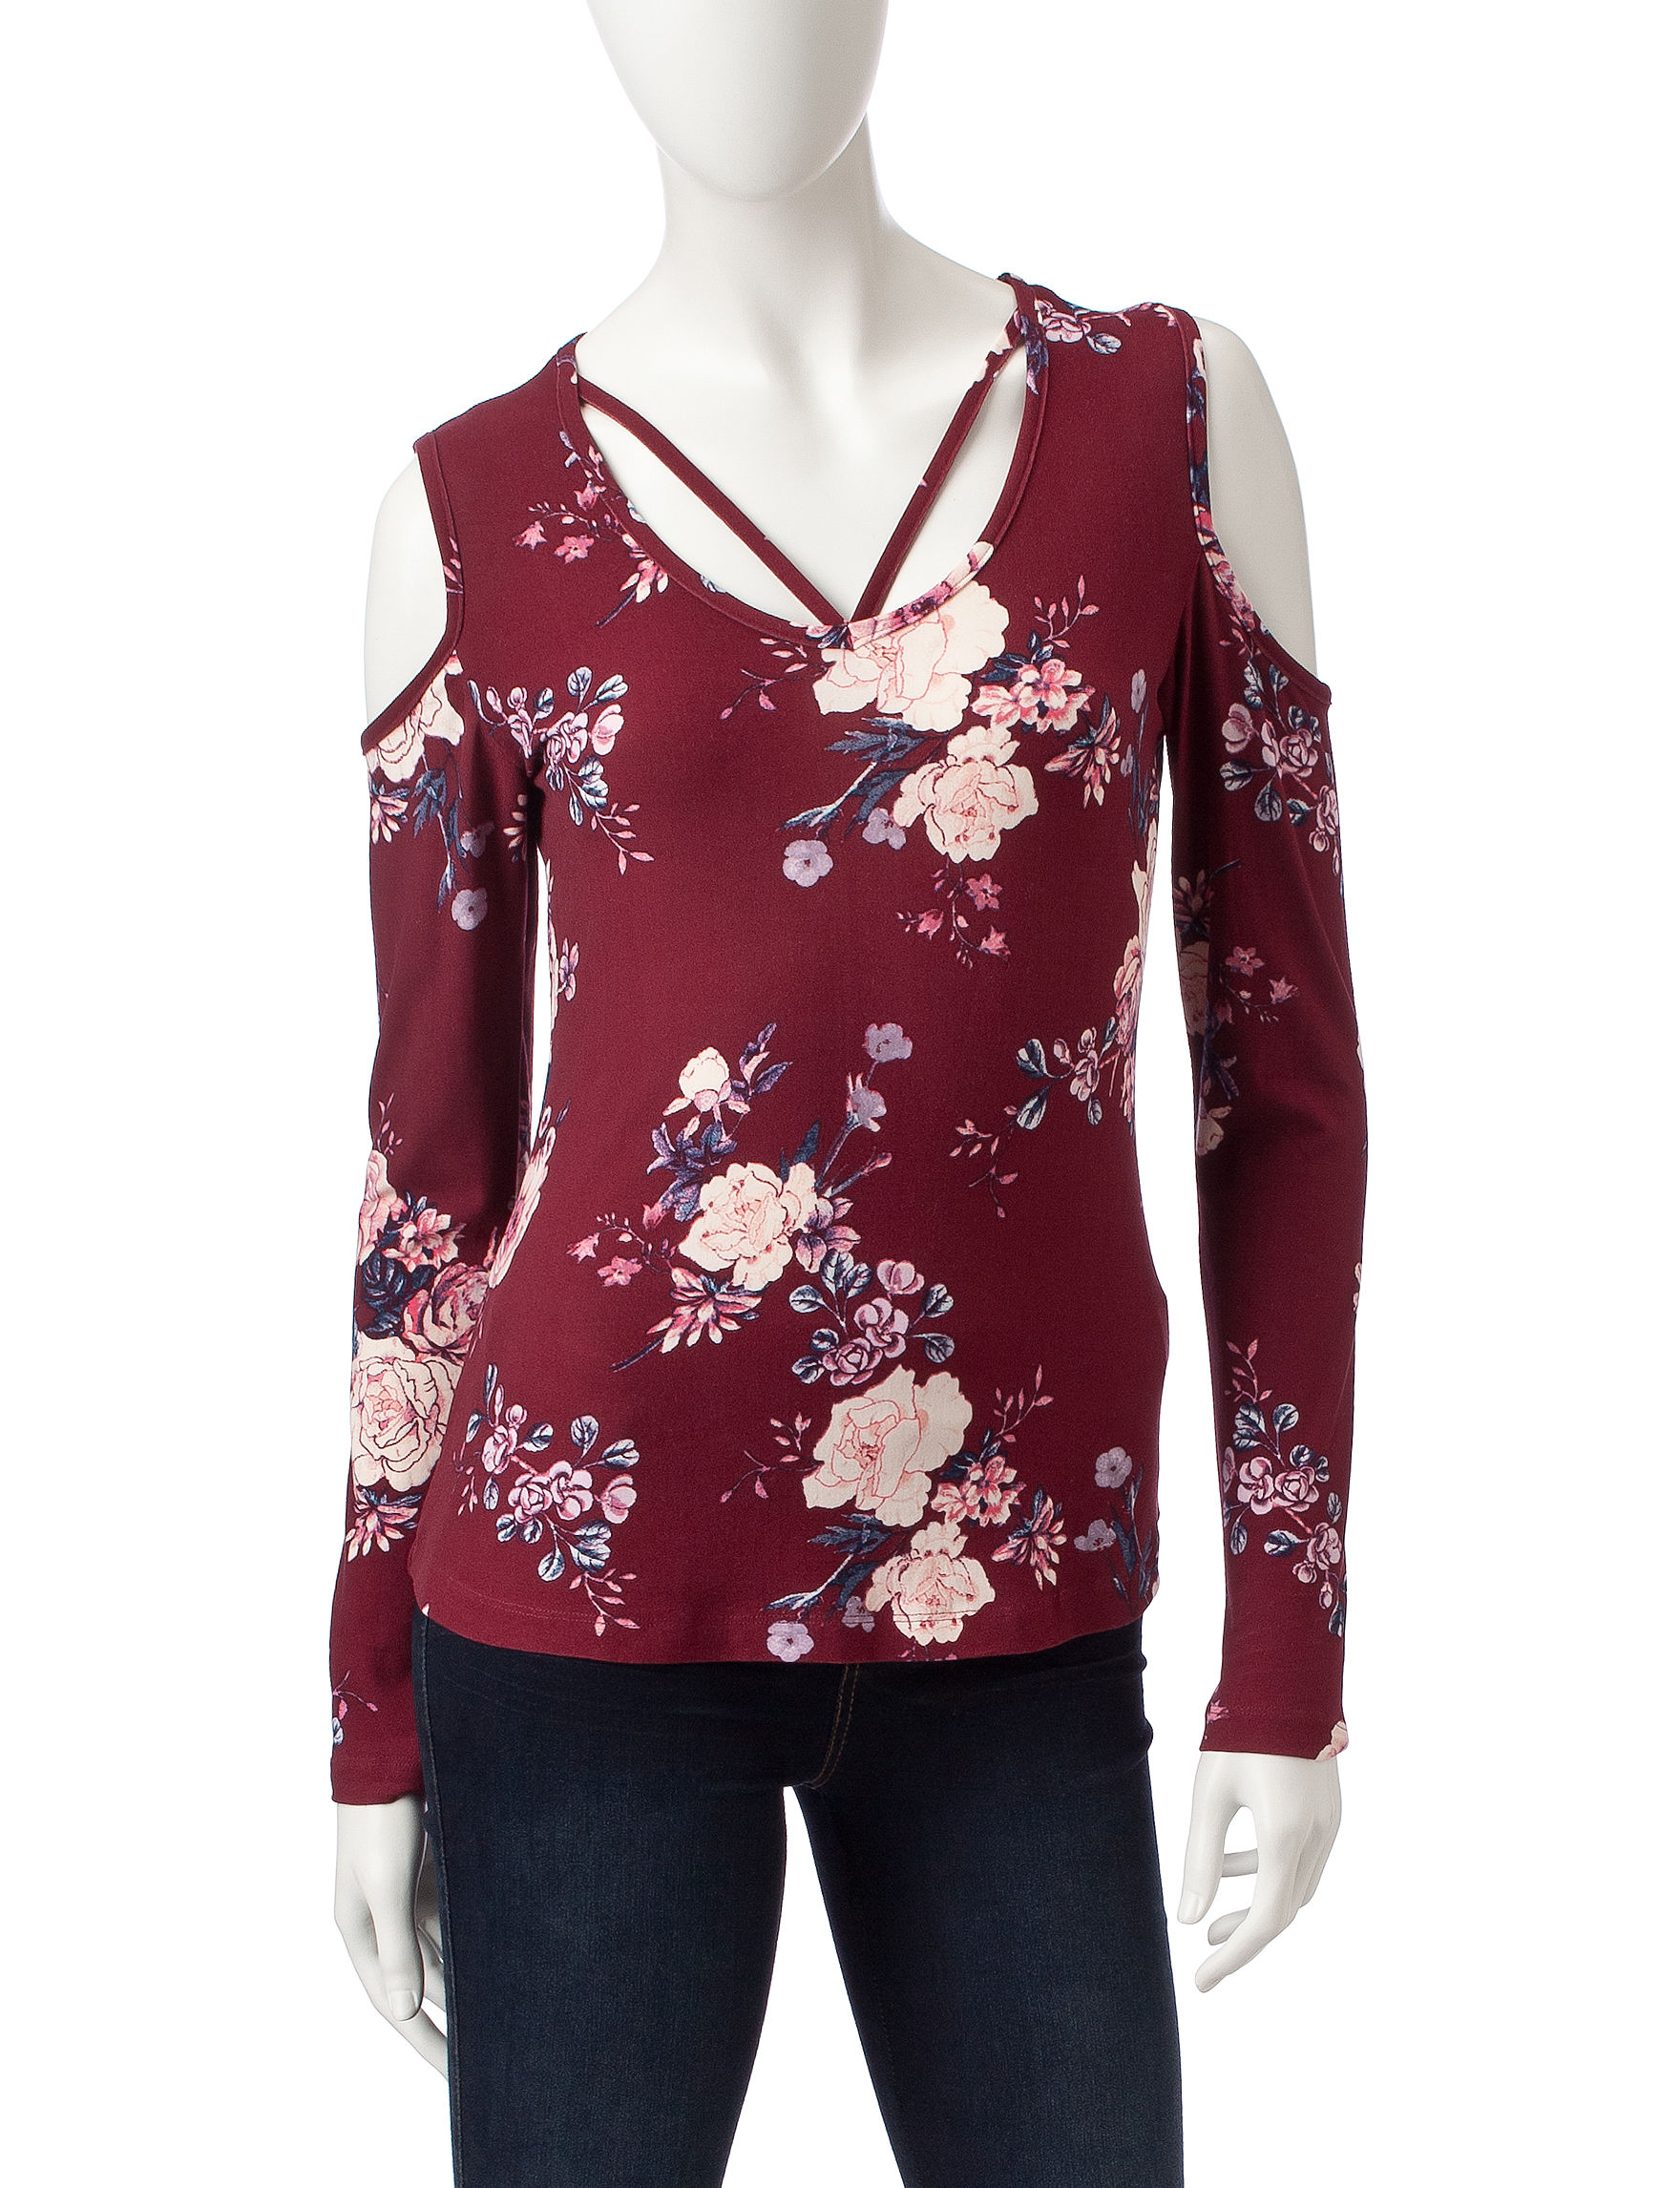 Wishful Park Burgundy Floral Shirts & Blouses